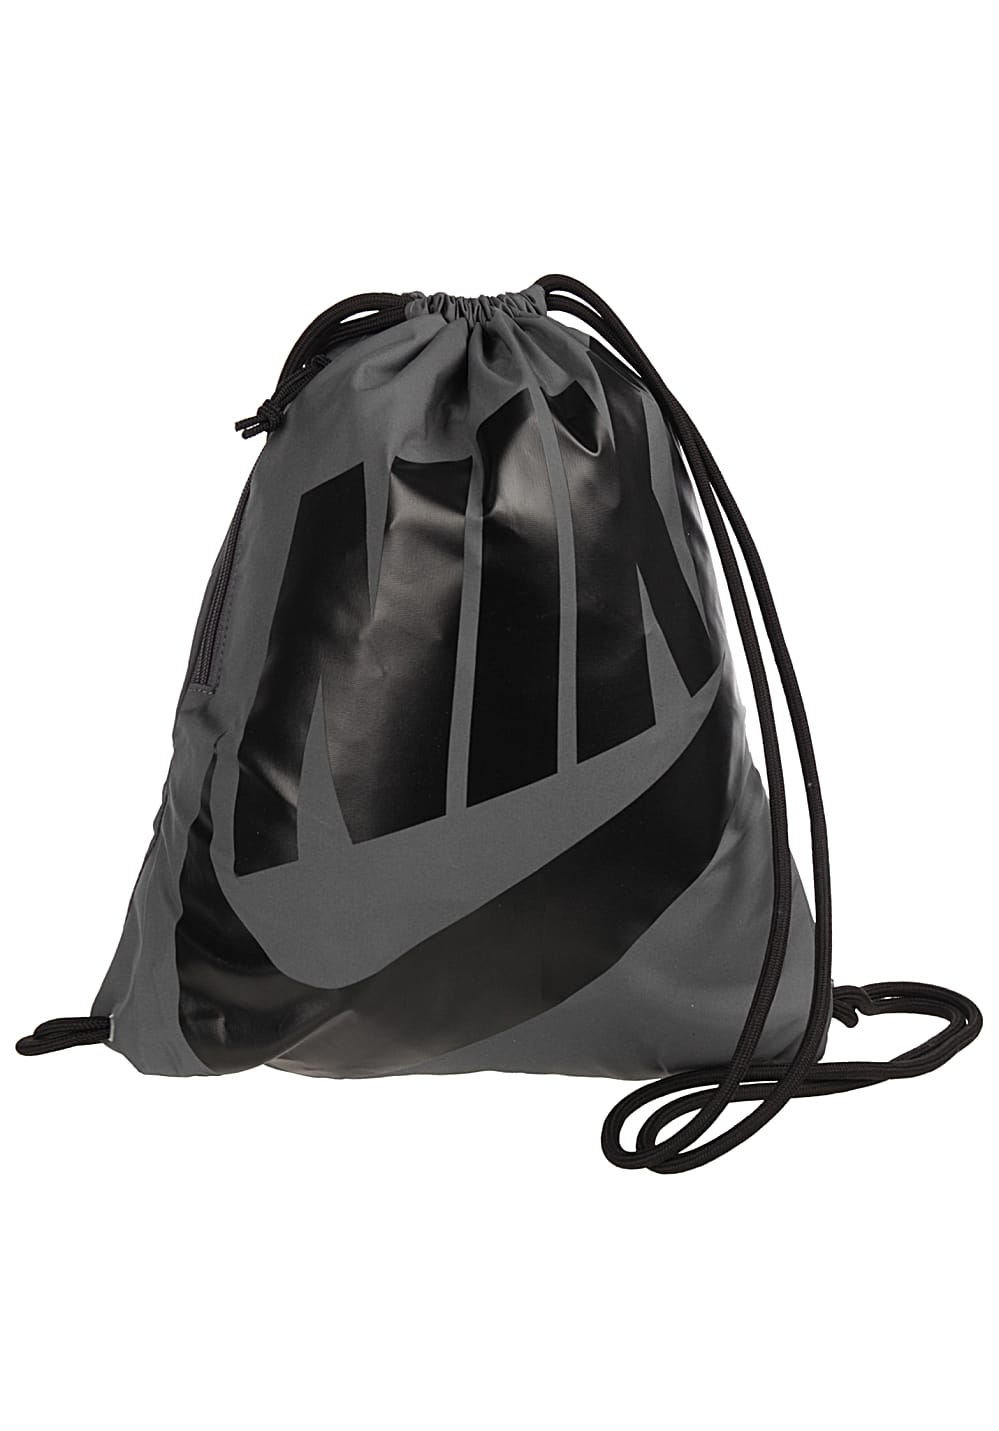 386be94575533 NIKE SPORTSWEAR Heritage - Tasche - Grau - Planet Sports